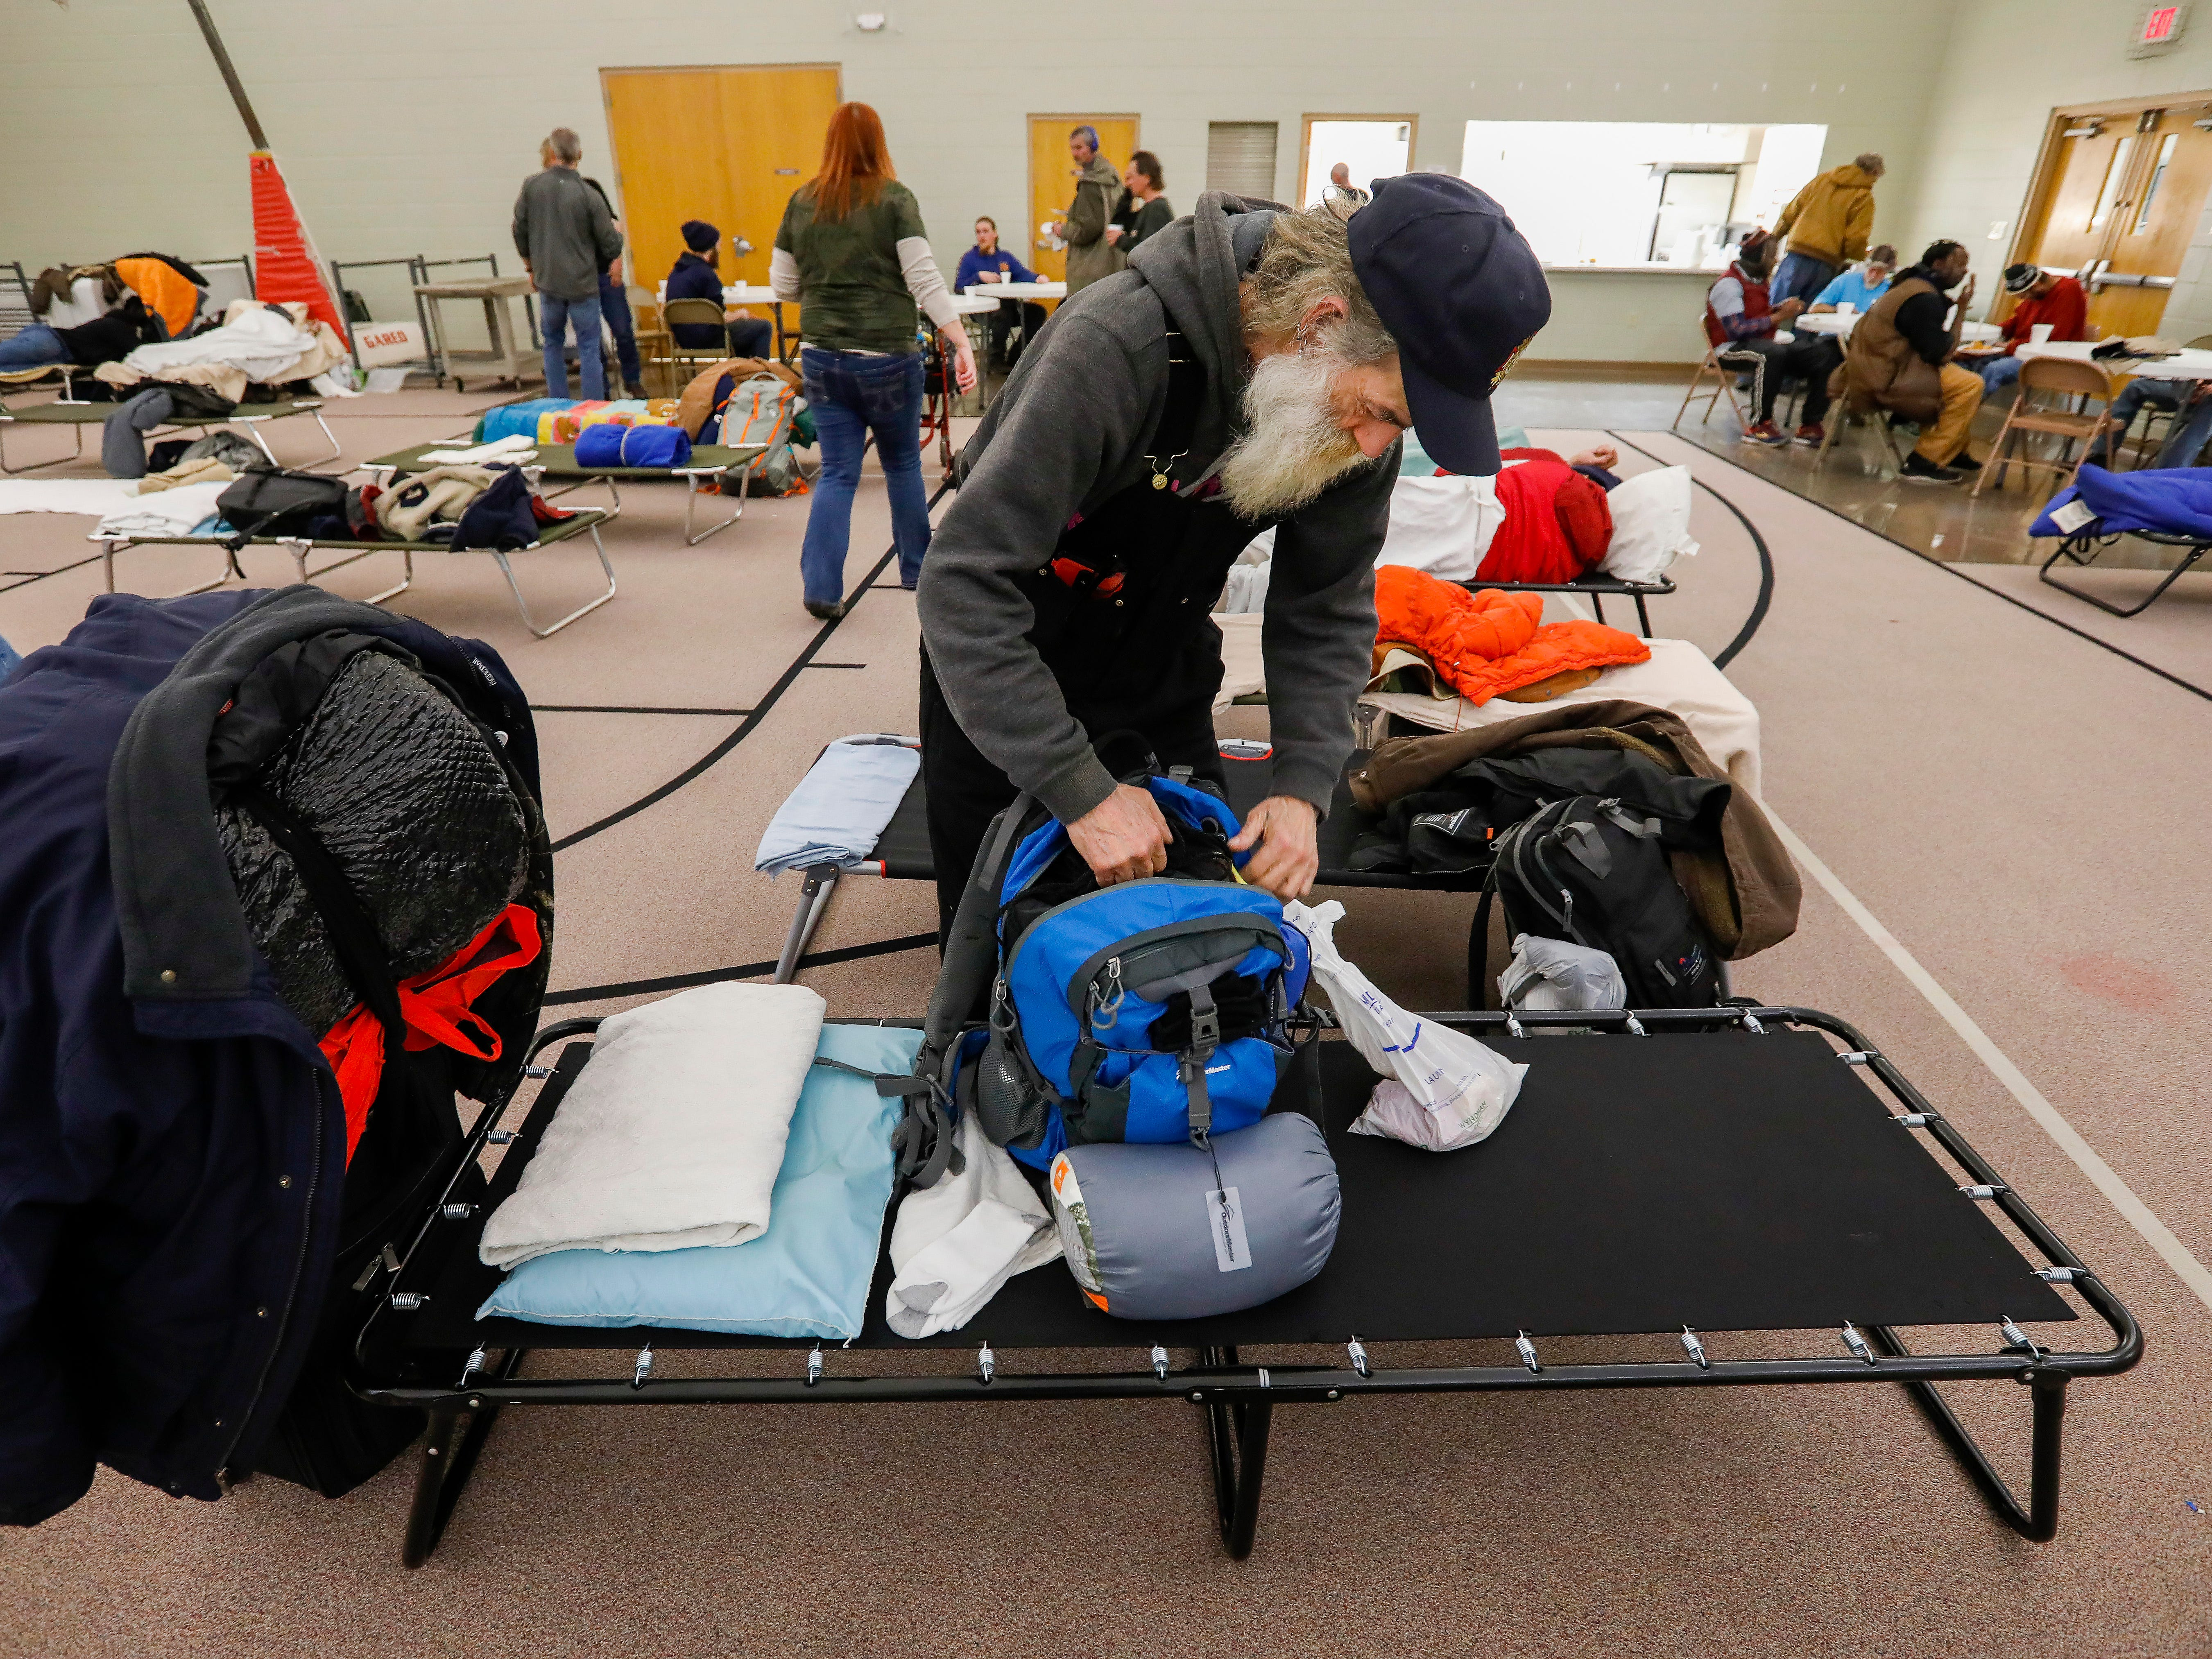 Gil Rife, who has been homeless for 3 years, sets up his cot at the E. Sunshine Church of Christ on Wednesday, Feb. 20, 2019. Rife was spending the night at the church which opened it's doors as a warming center after temperatures dropped below freezing.